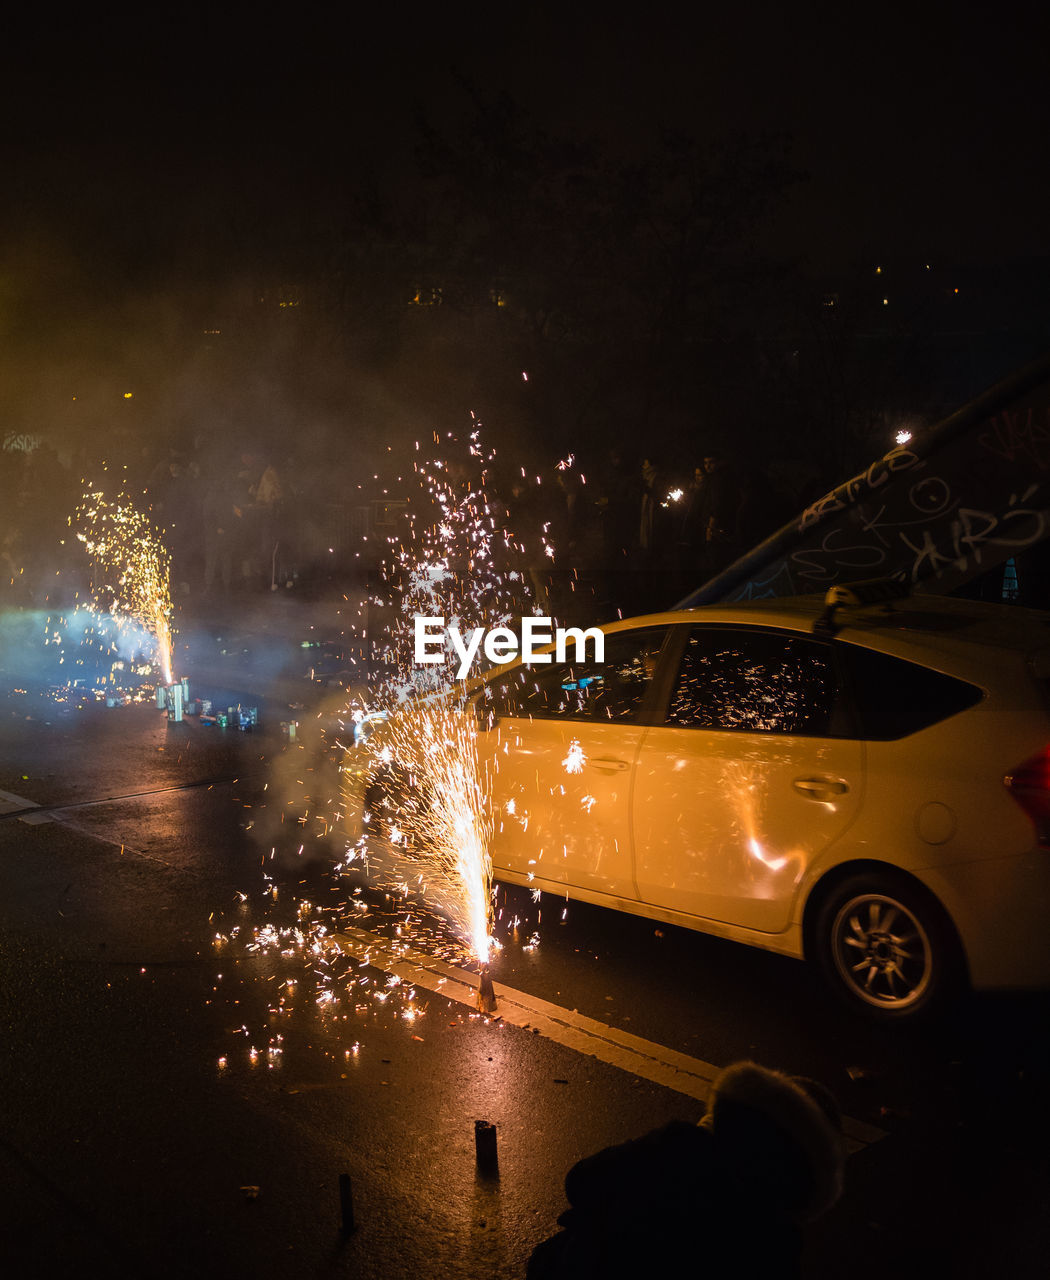 night, car, illuminated, mode of transportation, motor vehicle, transportation, motion, land vehicle, long exposure, blurred motion, sparks, city, event, celebration, architecture, firework, street, nature, arts culture and entertainment, firework - man made object, firework display